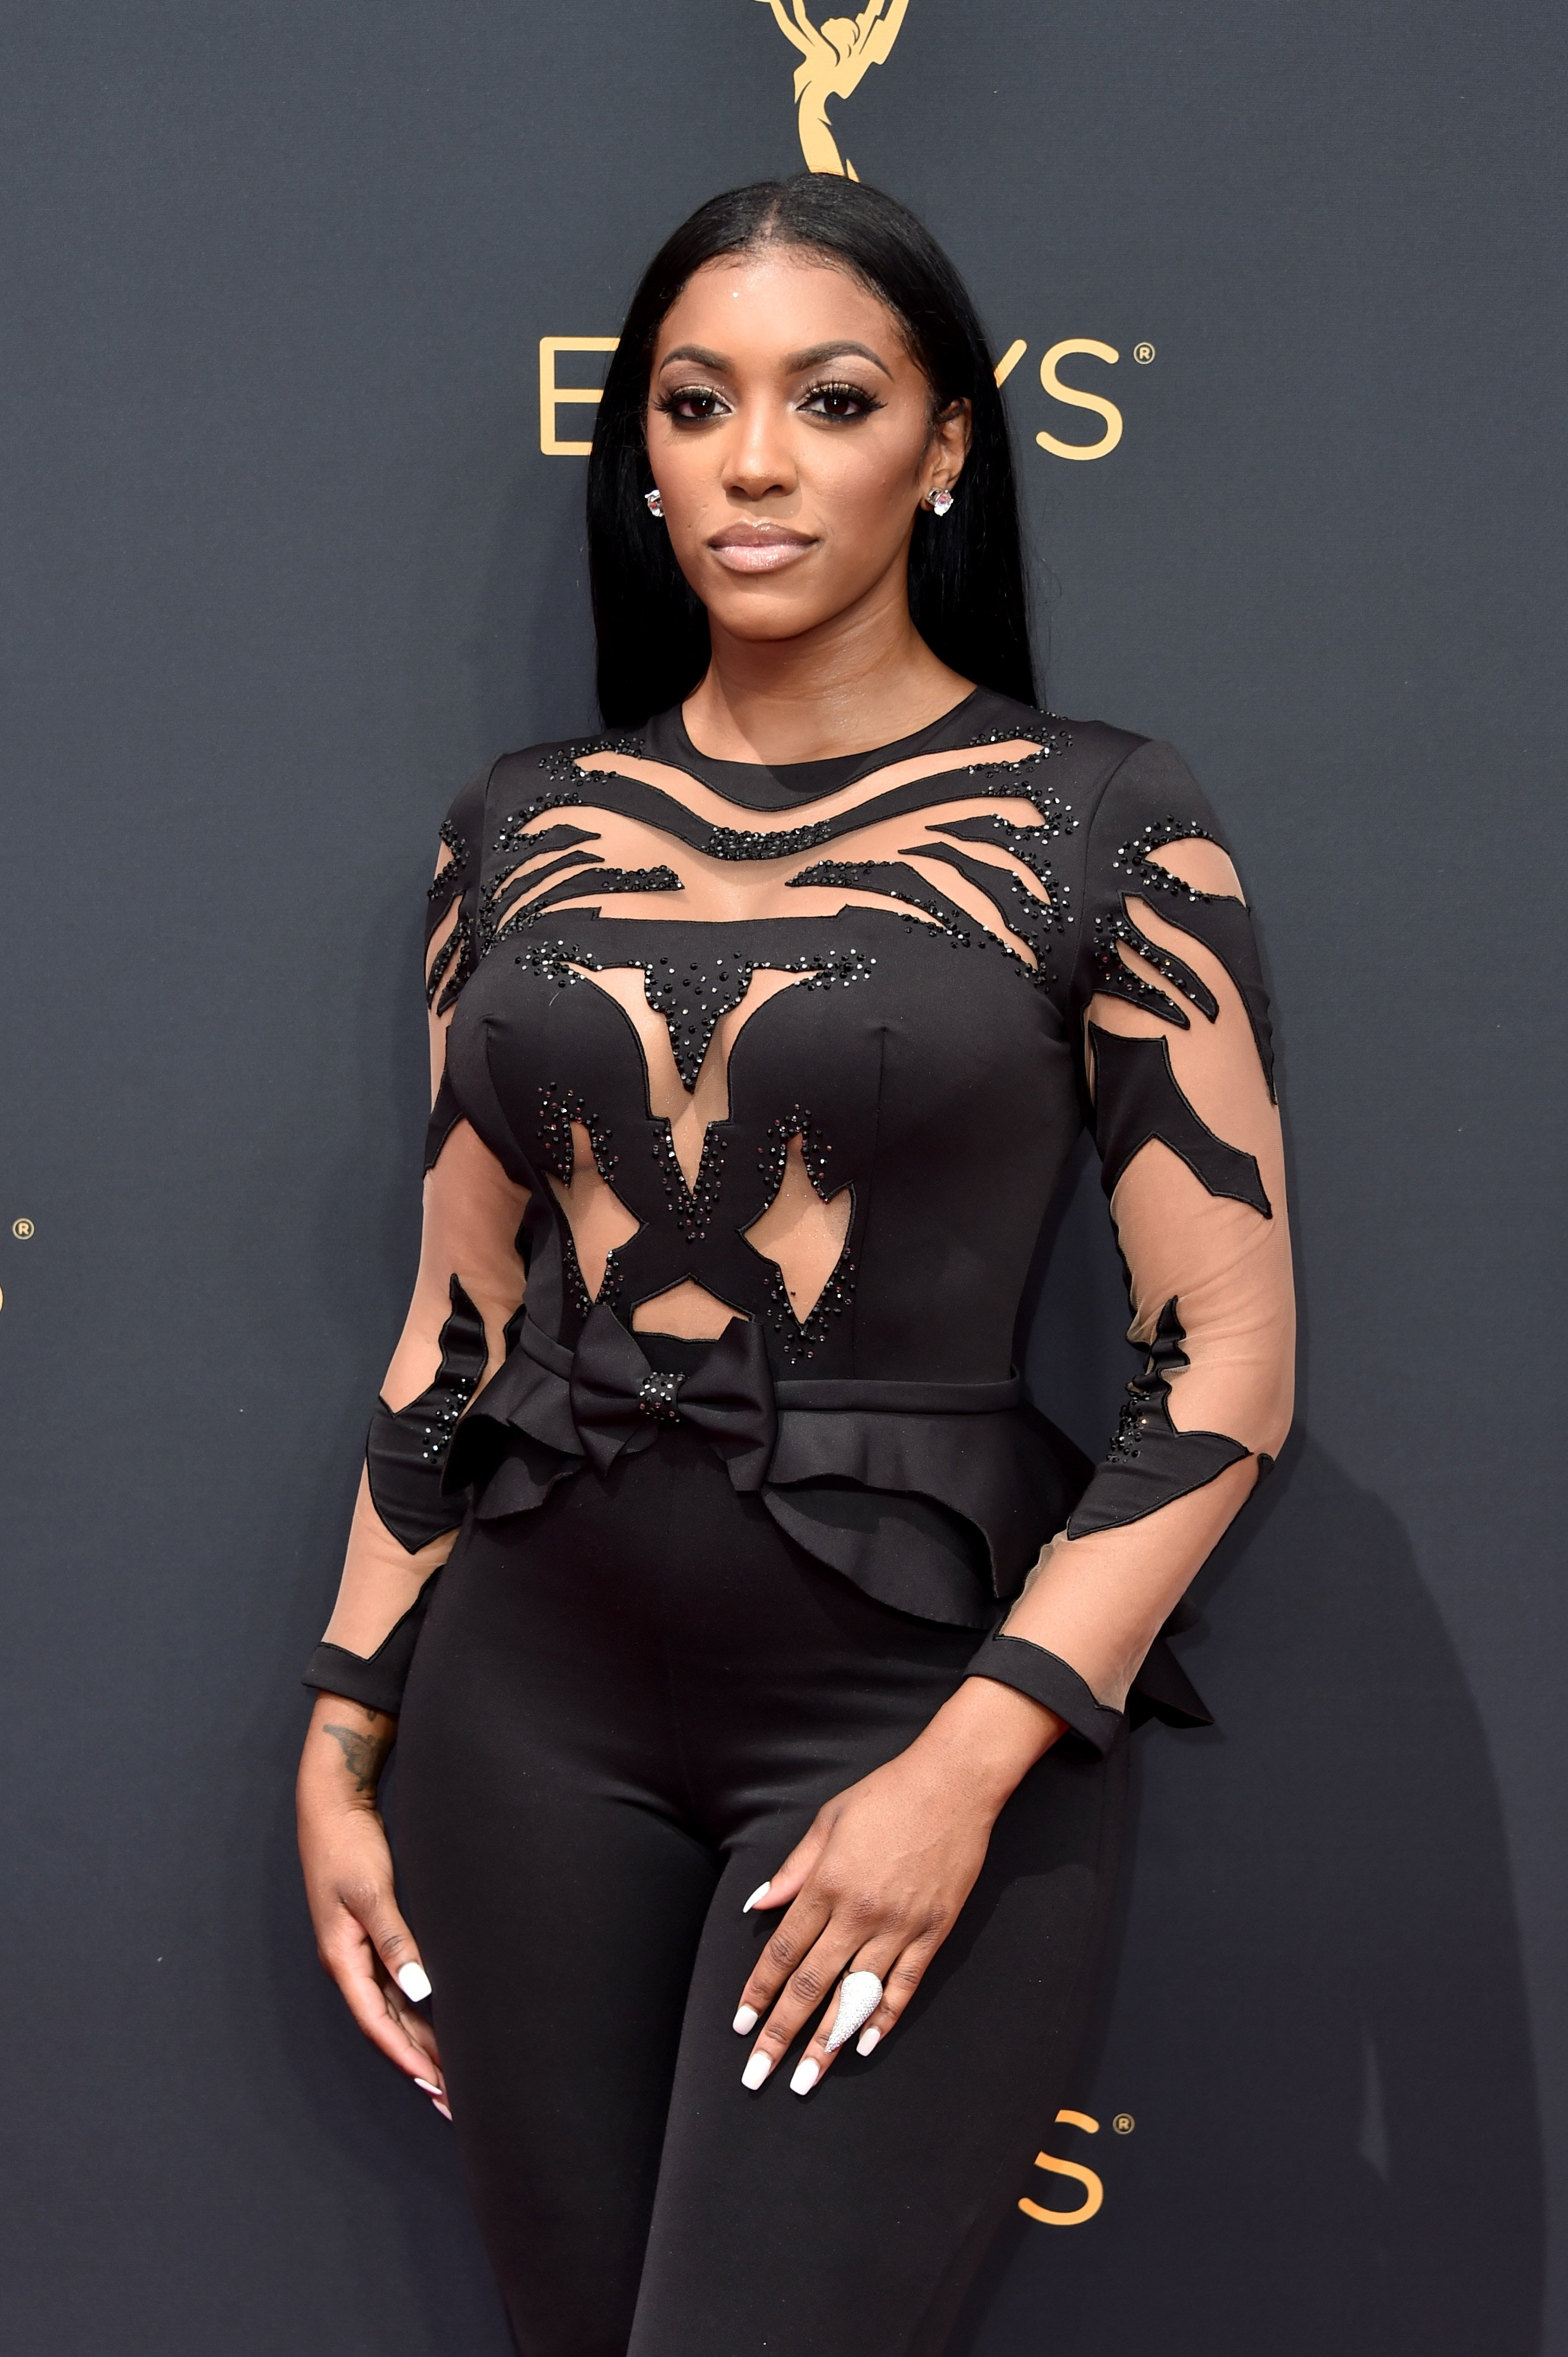 Porsha Williams at the 68th Annual Primetime Emmy Awards in September 2016. | Photo: Getty Images